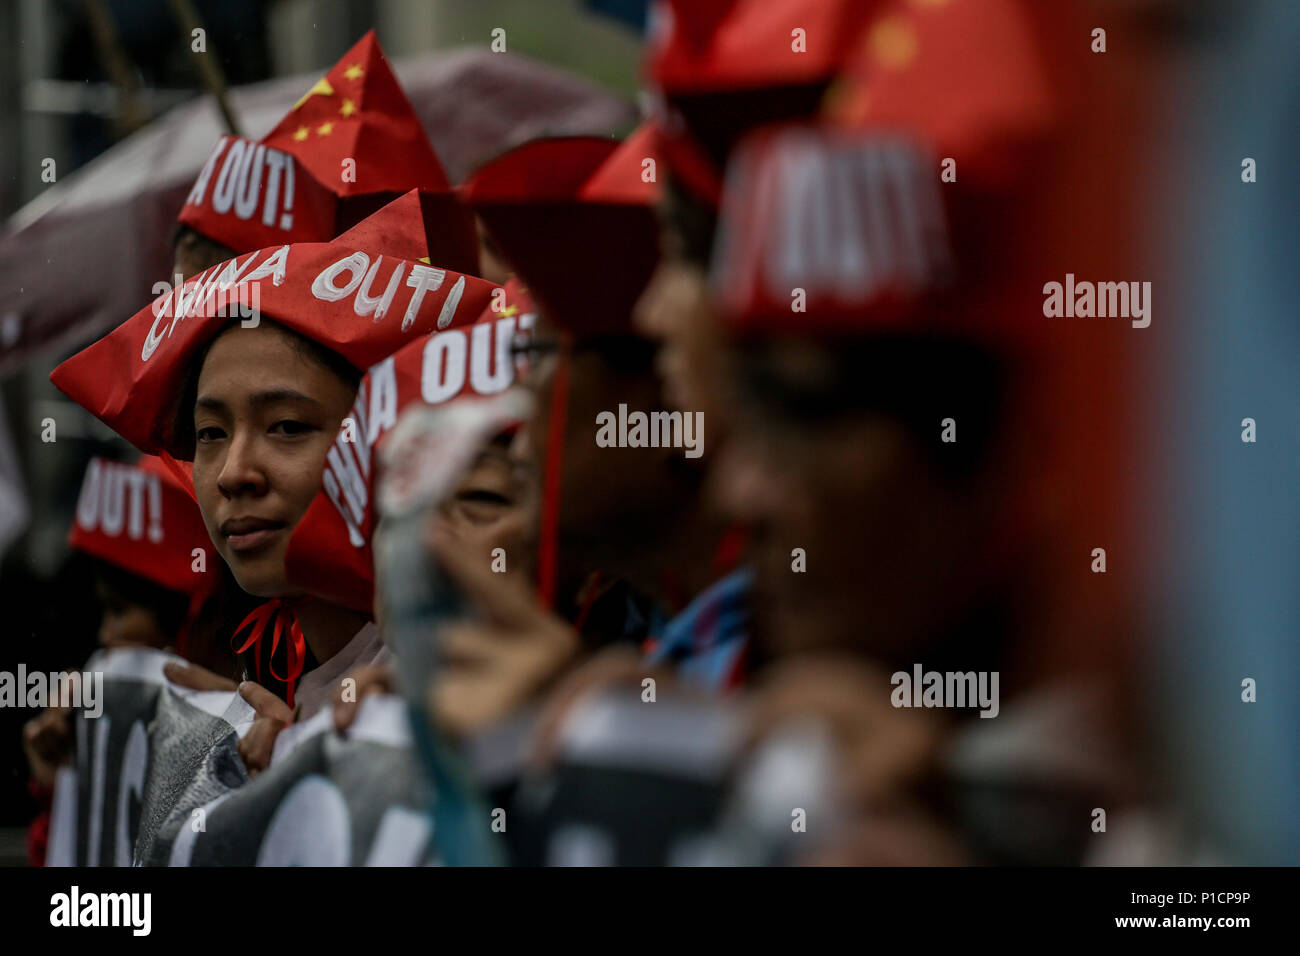 Manila, Philippines. 12th June, 2018. Various militant groups protest in front of the Chinese consulate in Makati City, Philippines in celebration of the 120th Philippine Independence Day on Tuesday. June 12, 2018. The groups condemn the ongoing dispute between the Philippines and China in the South China Sea. Credit: Basilio H. Sepe/ZUMA Wire/Alamy Live News - Stock Image